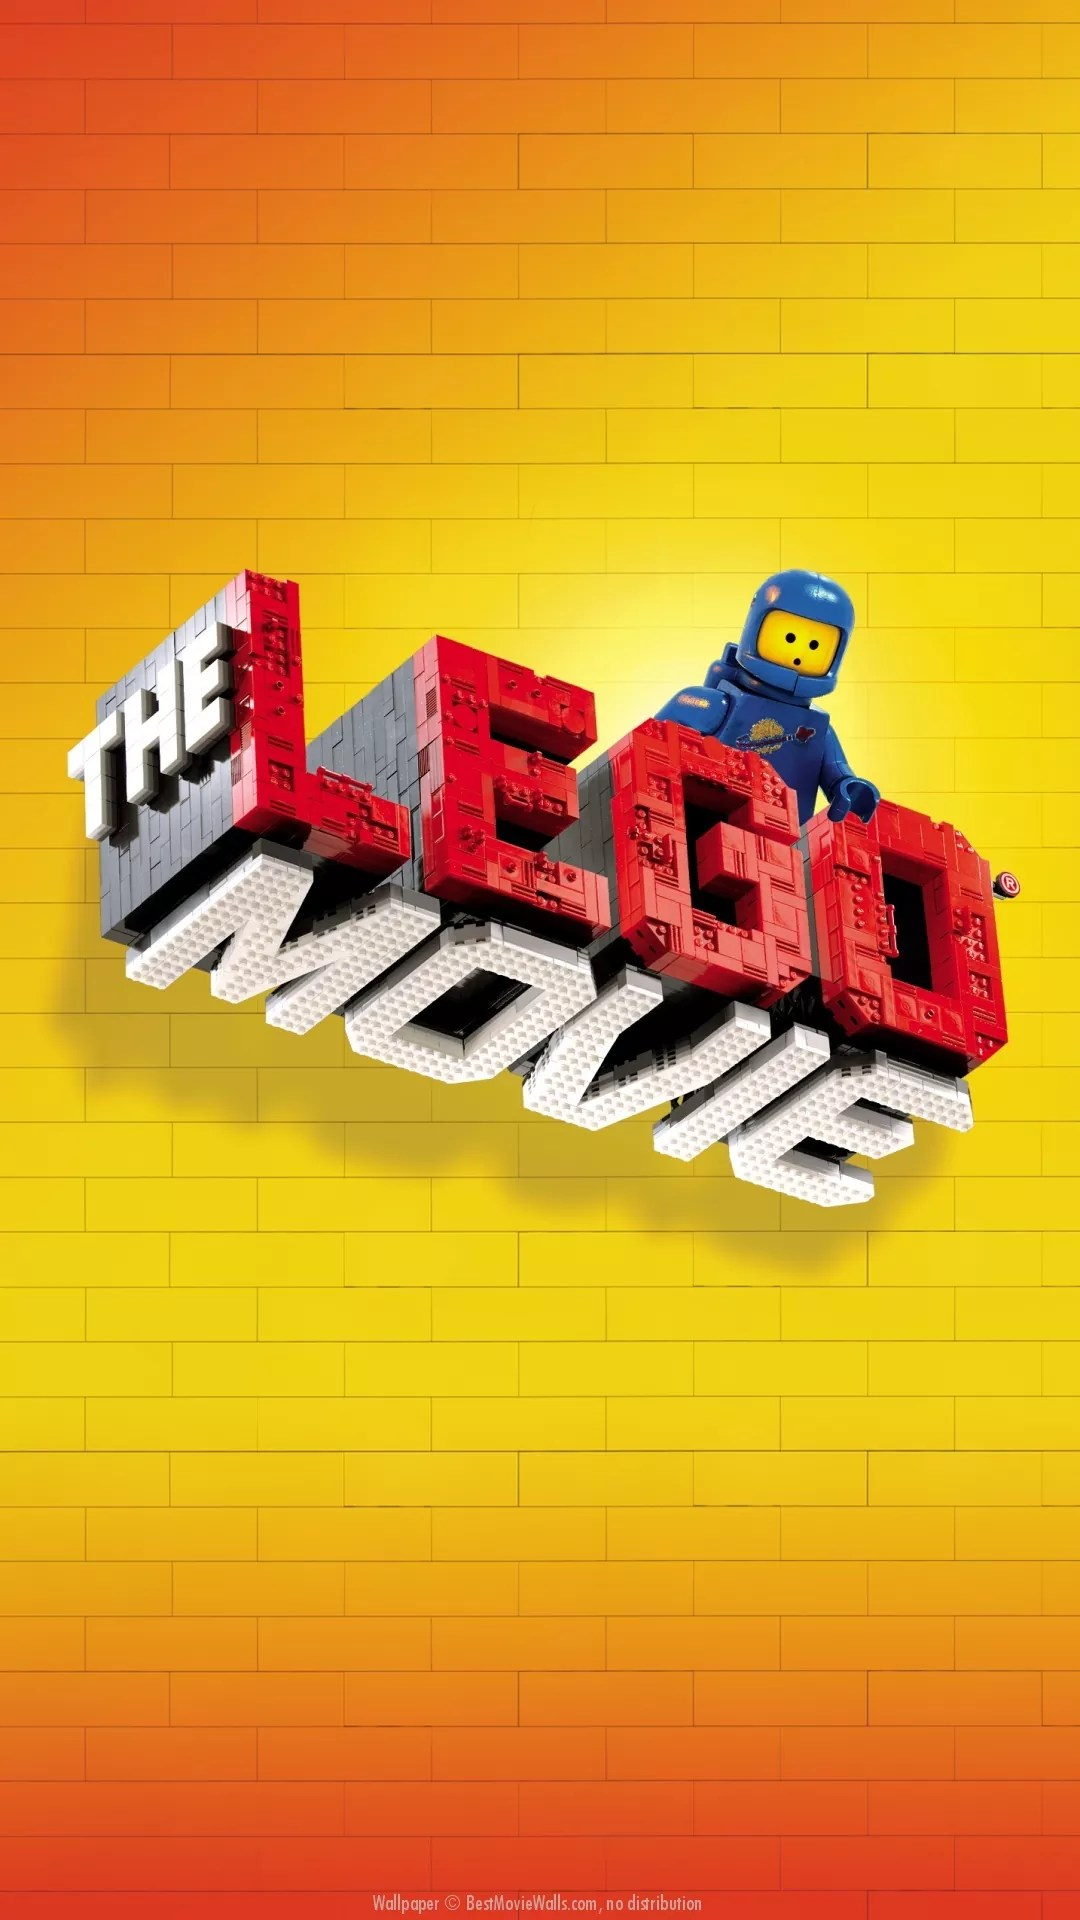 Free Animated Wallpapers For Mobile Phones The Coolest Amp Most Awesome The Lego Movie Wallpapers On